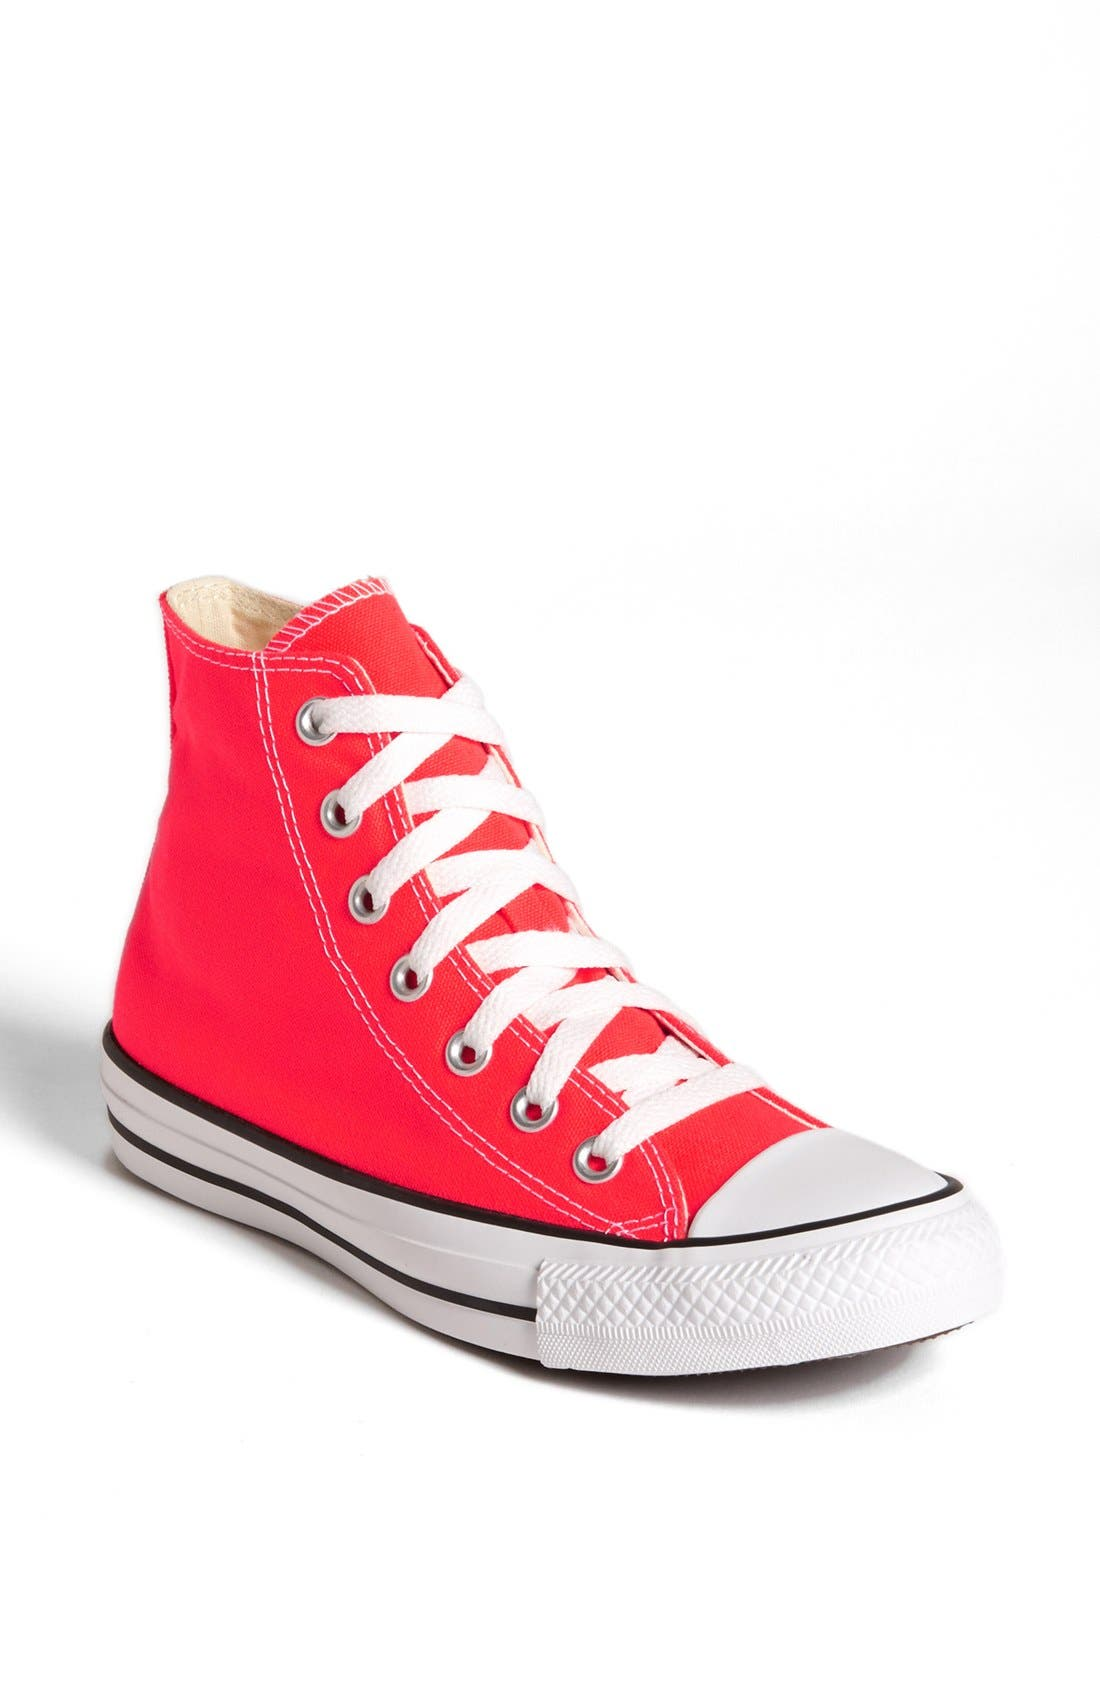 Alternate Image 1 Selected - Converse Chuck Taylor® All Star® 'Fiery Coral' High Top Sneaker (Women)